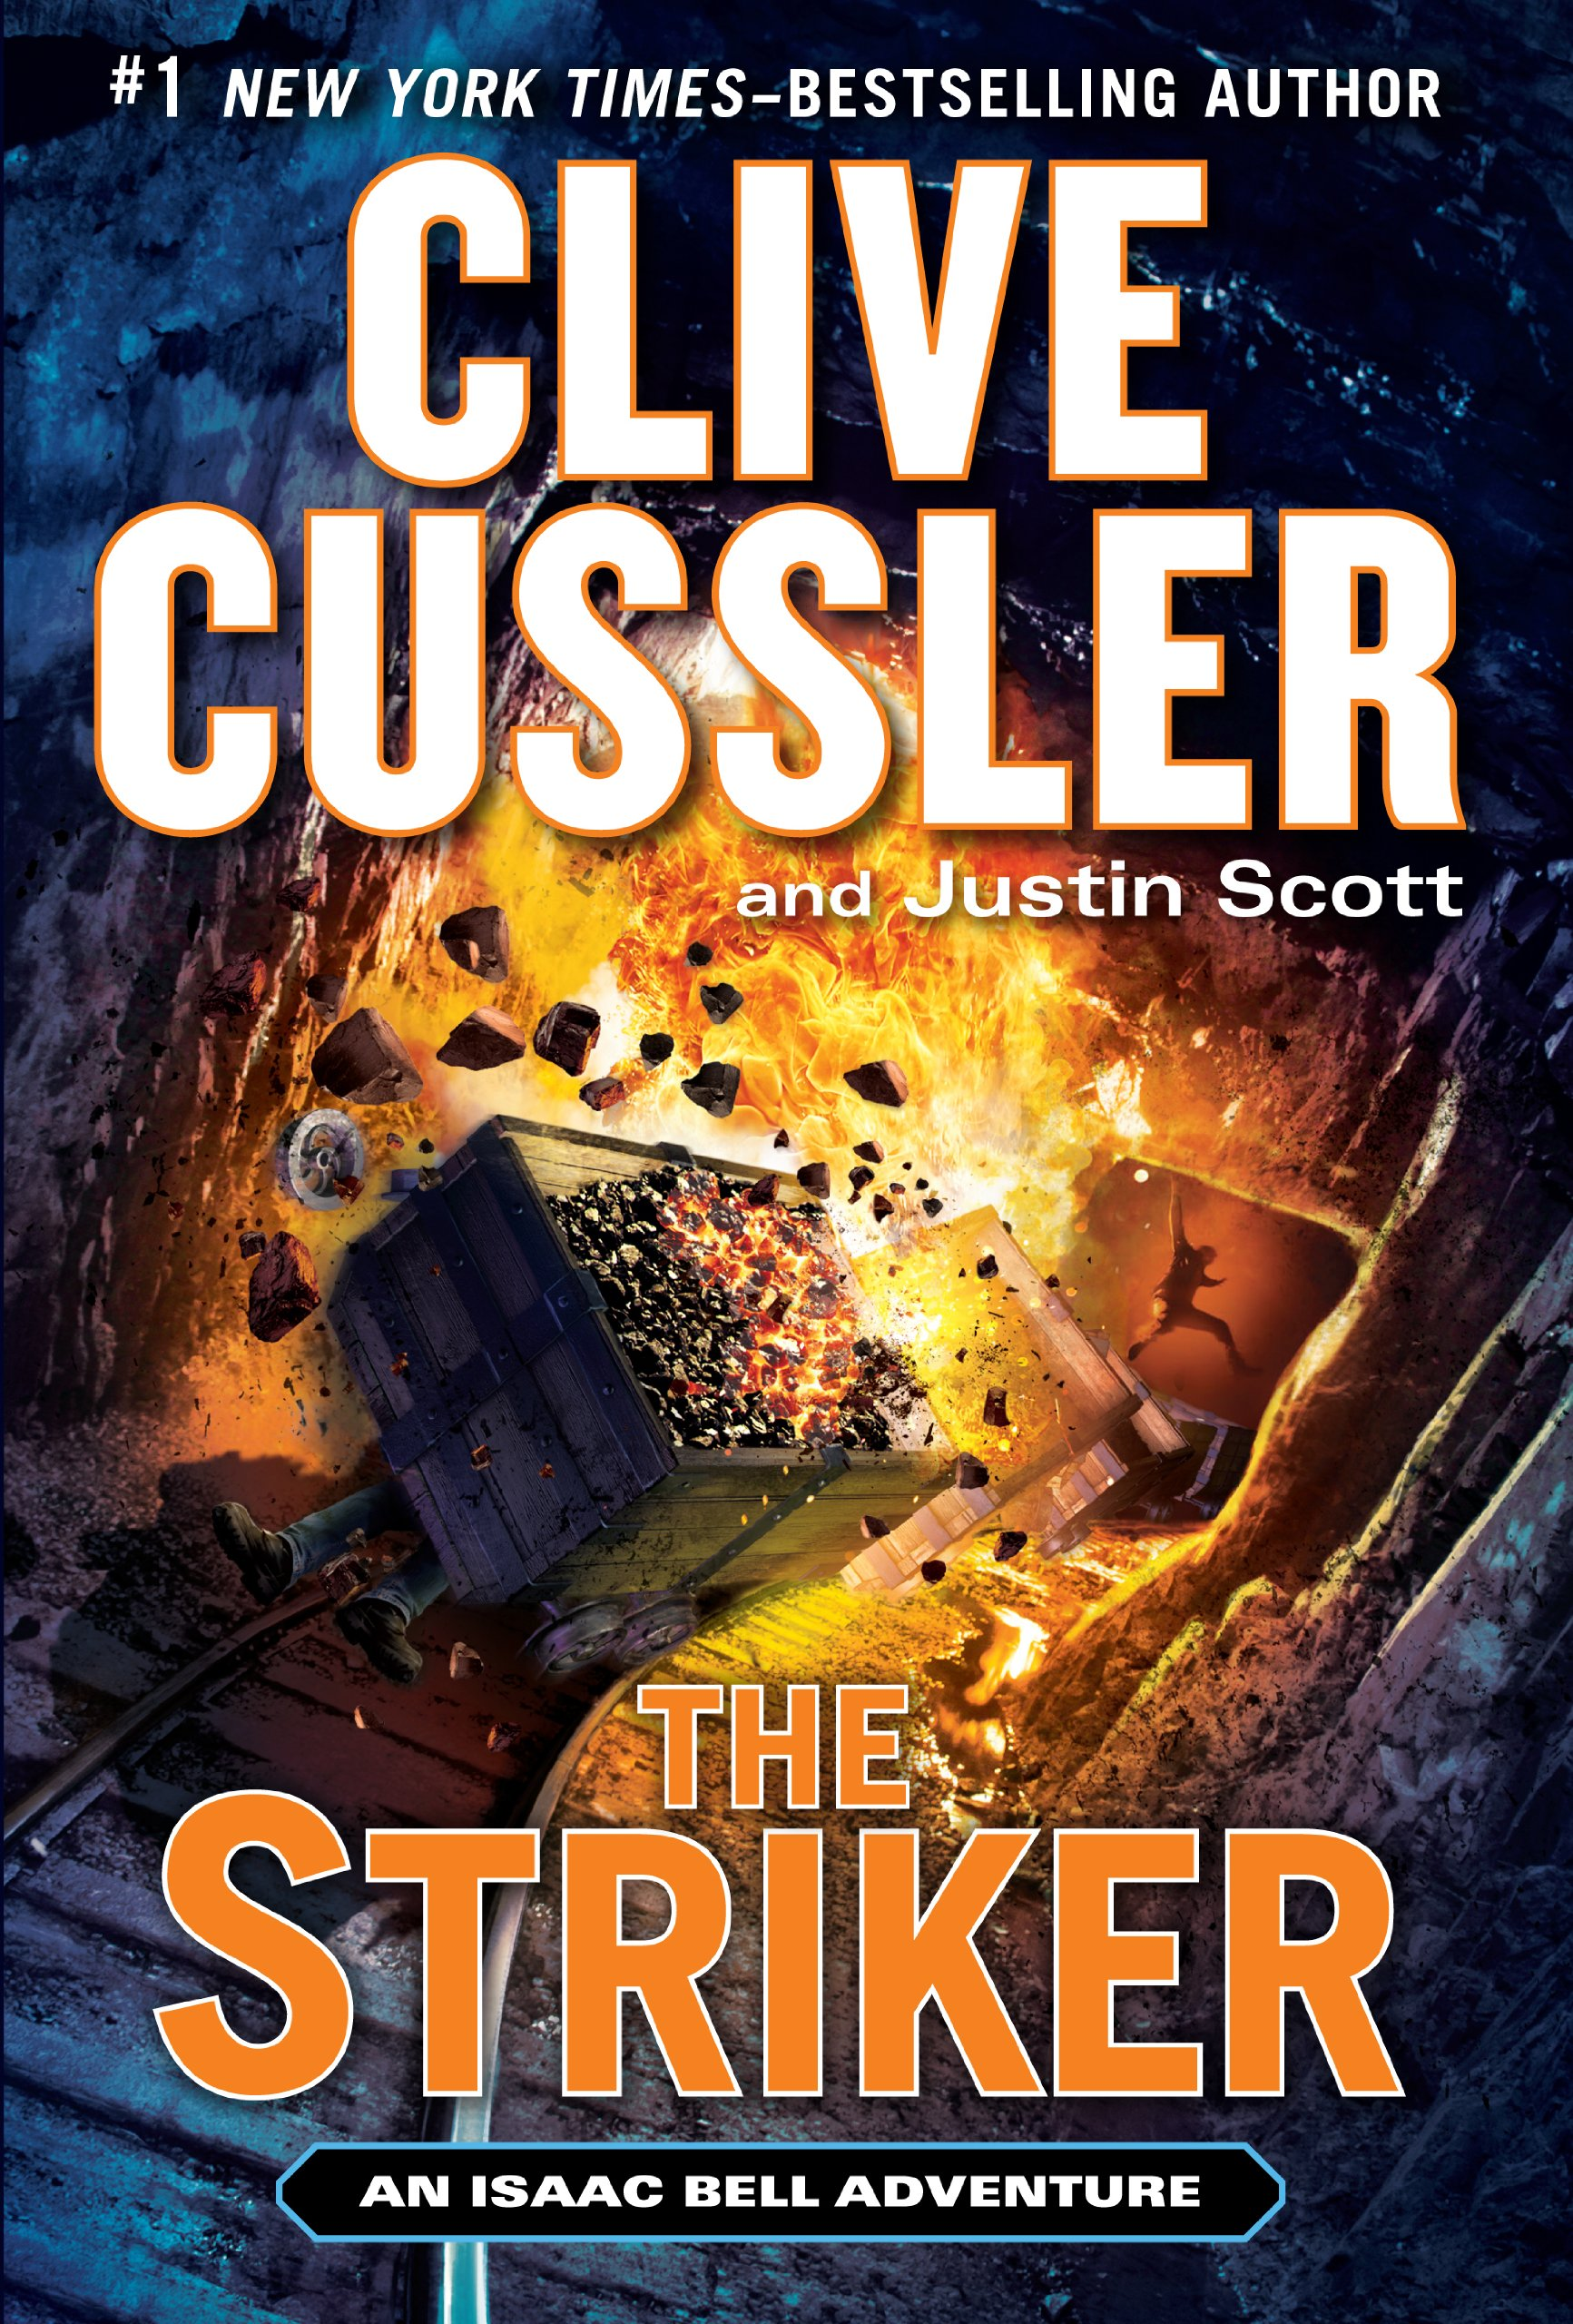 Read Online The Striker (An Isaac Bell Adventure) PDF ePub fb2 book